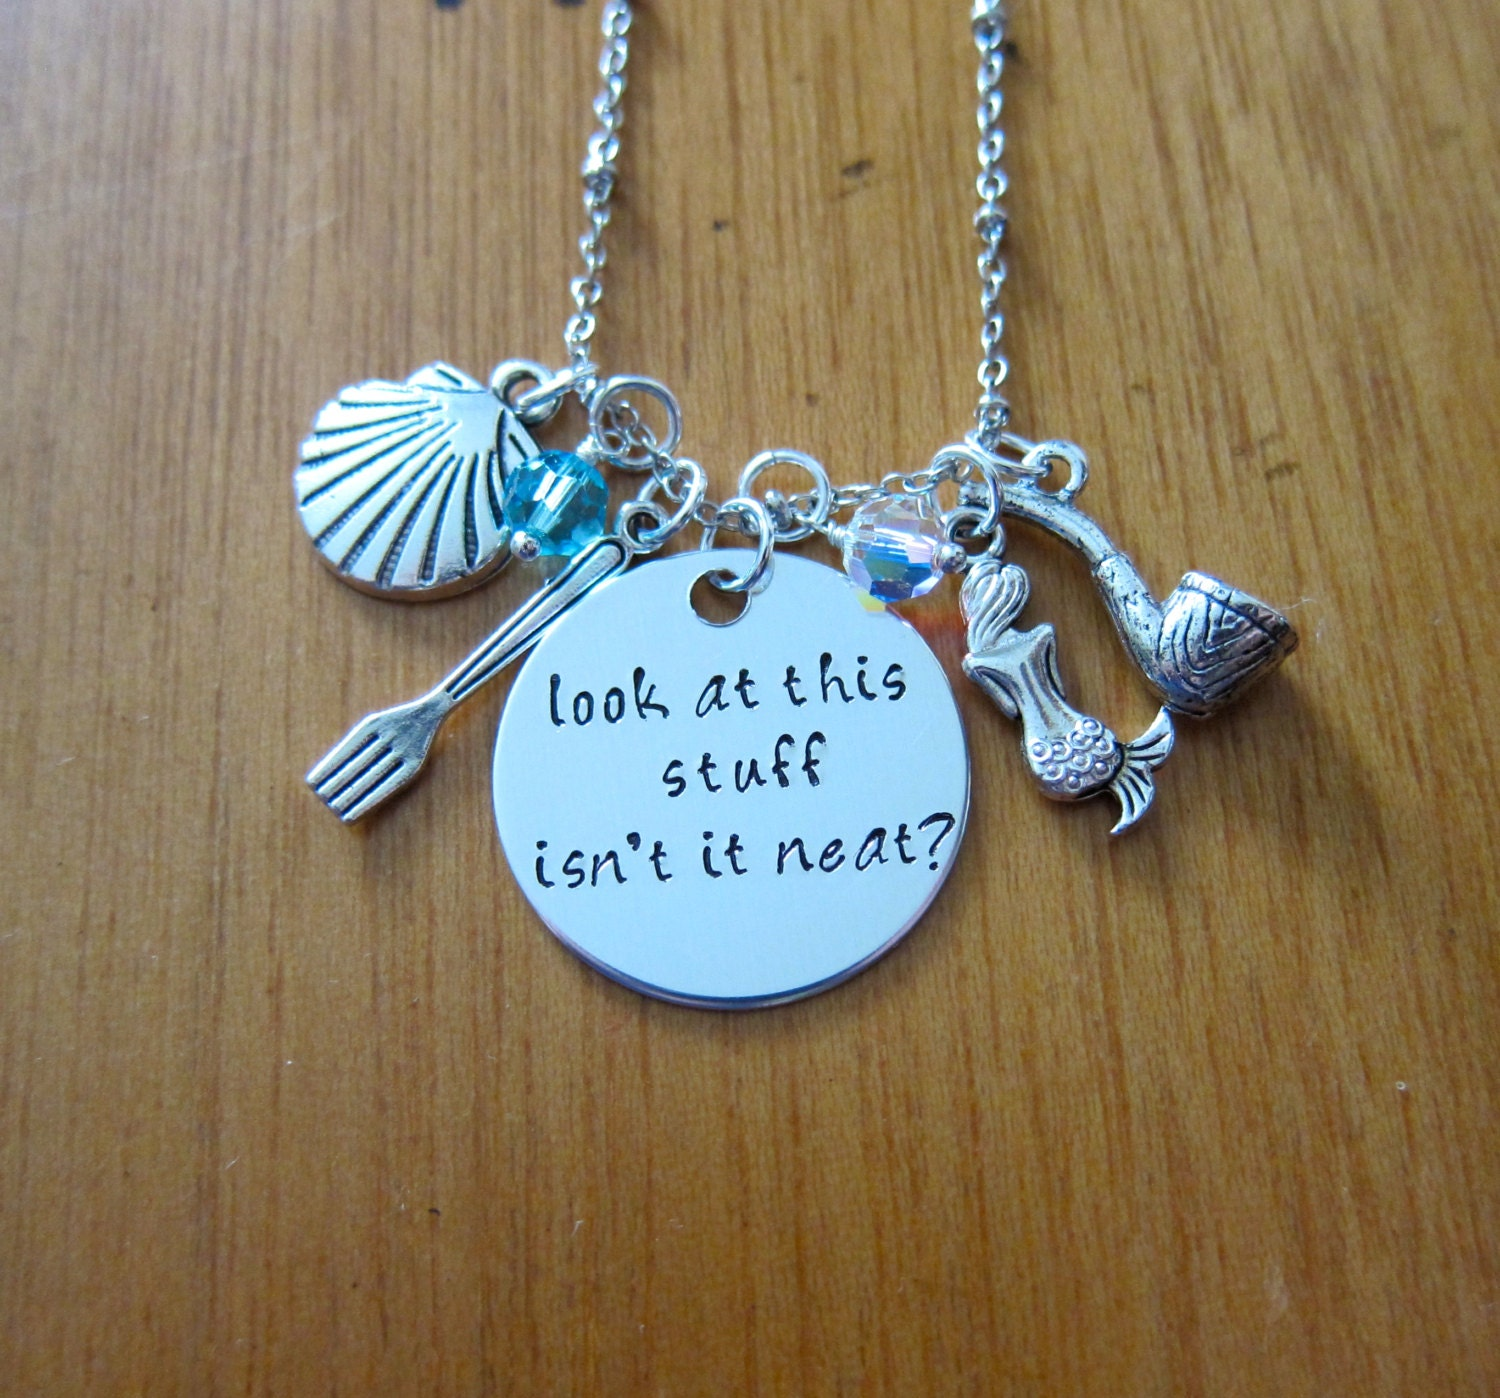 Little Mermaid Necklace Ariel Inspired. Look at this stuff